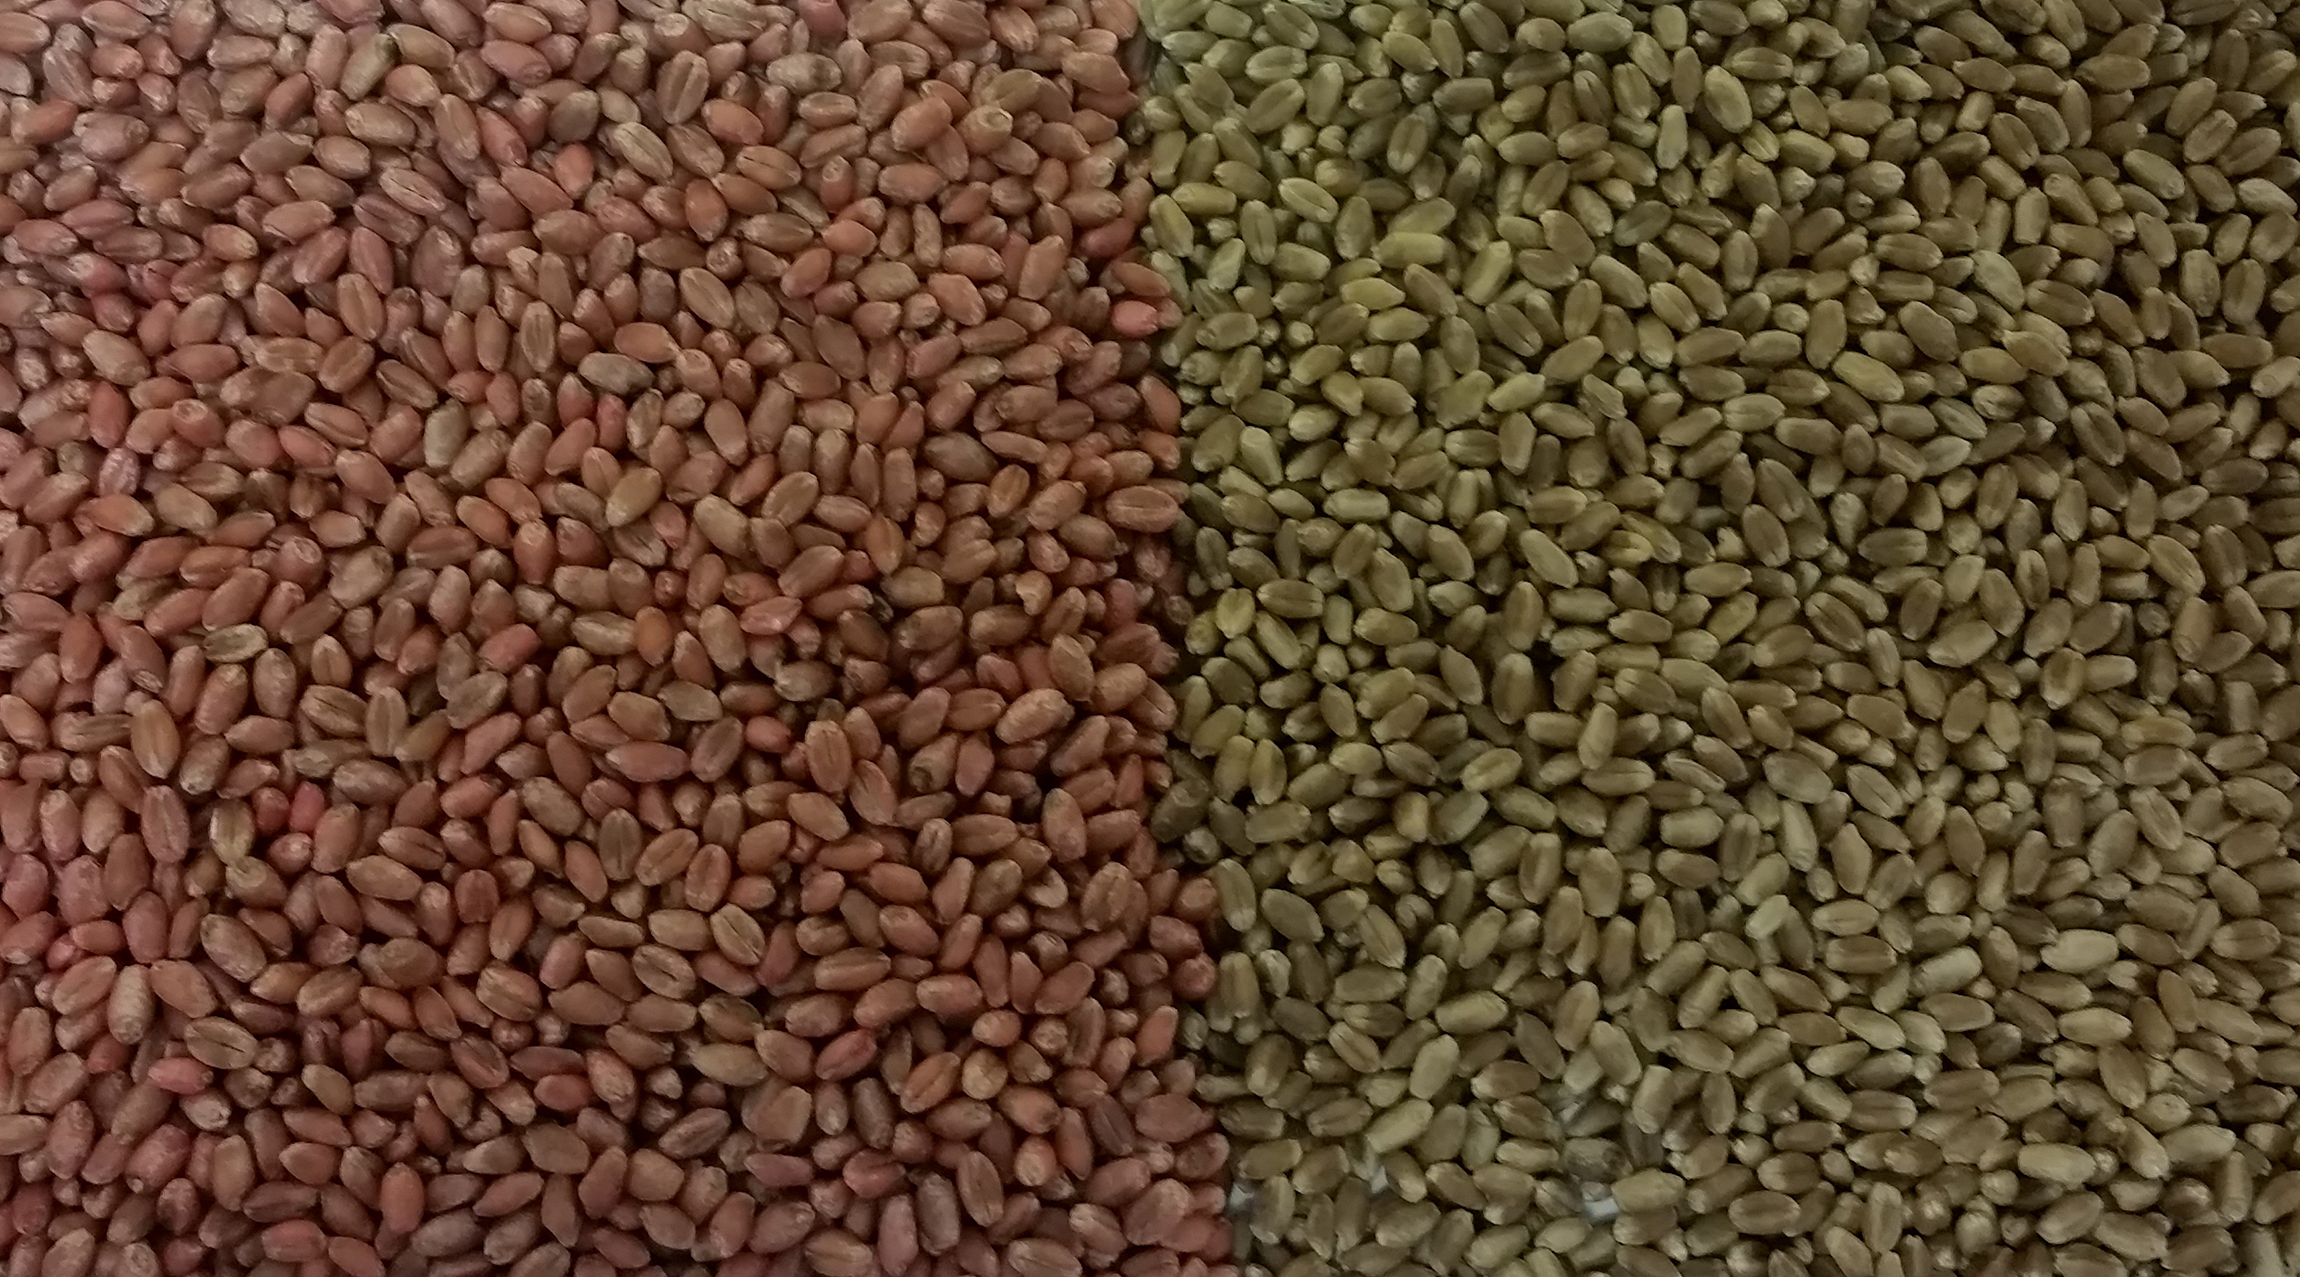 WheatSeed Resized